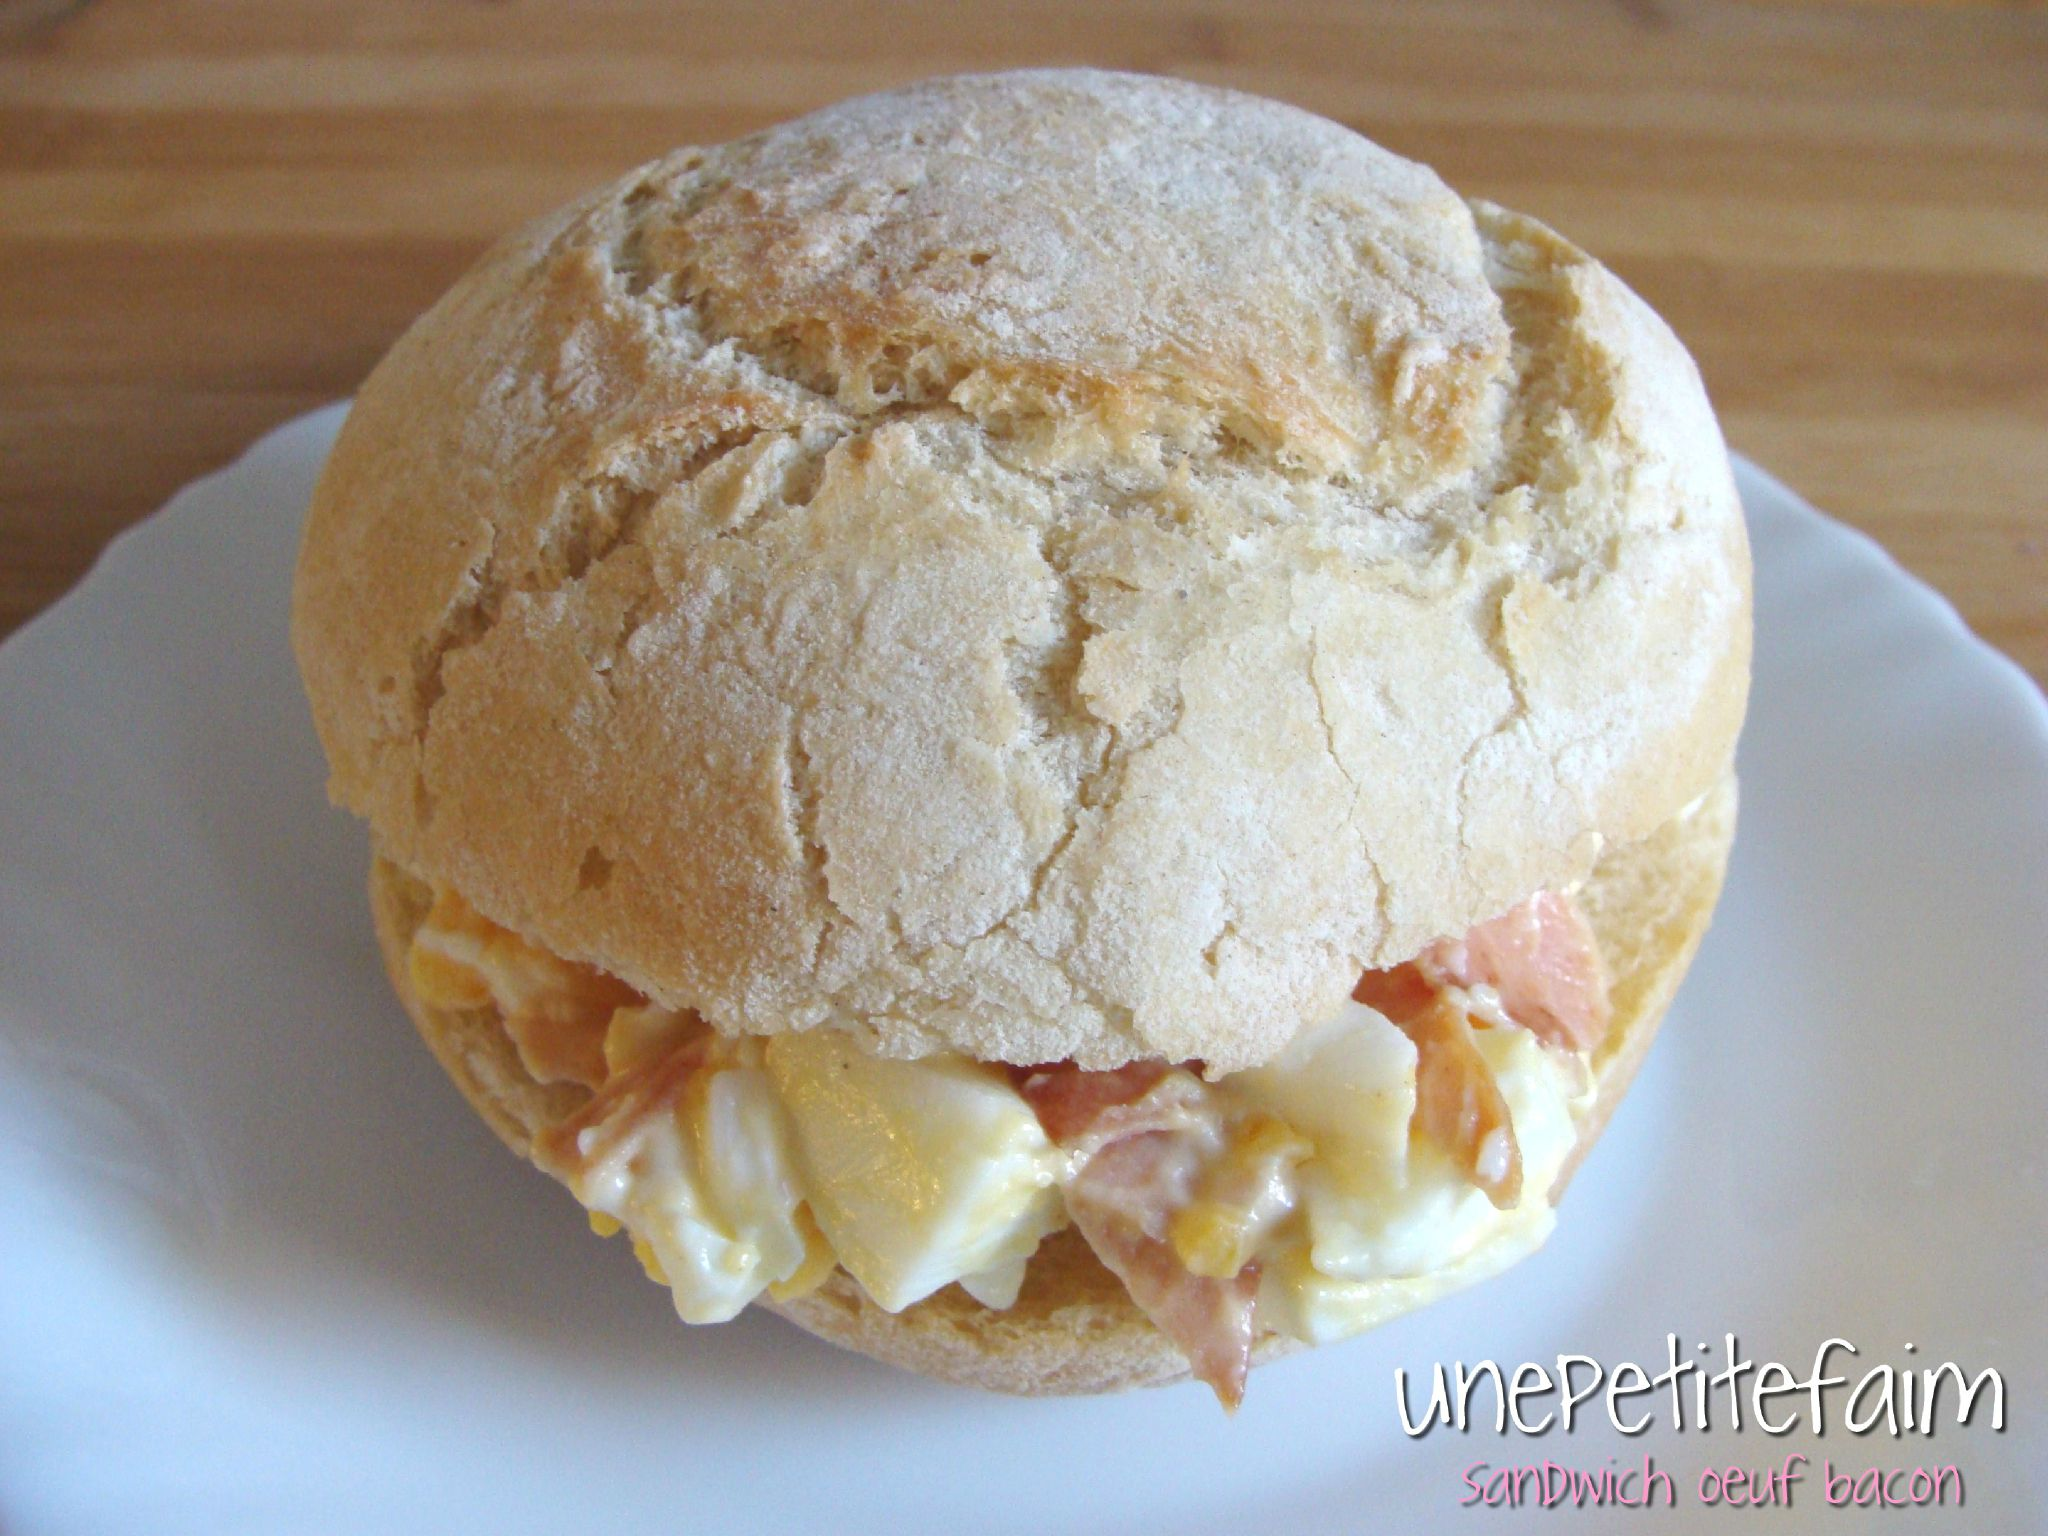 Sandwich oeuf bacon